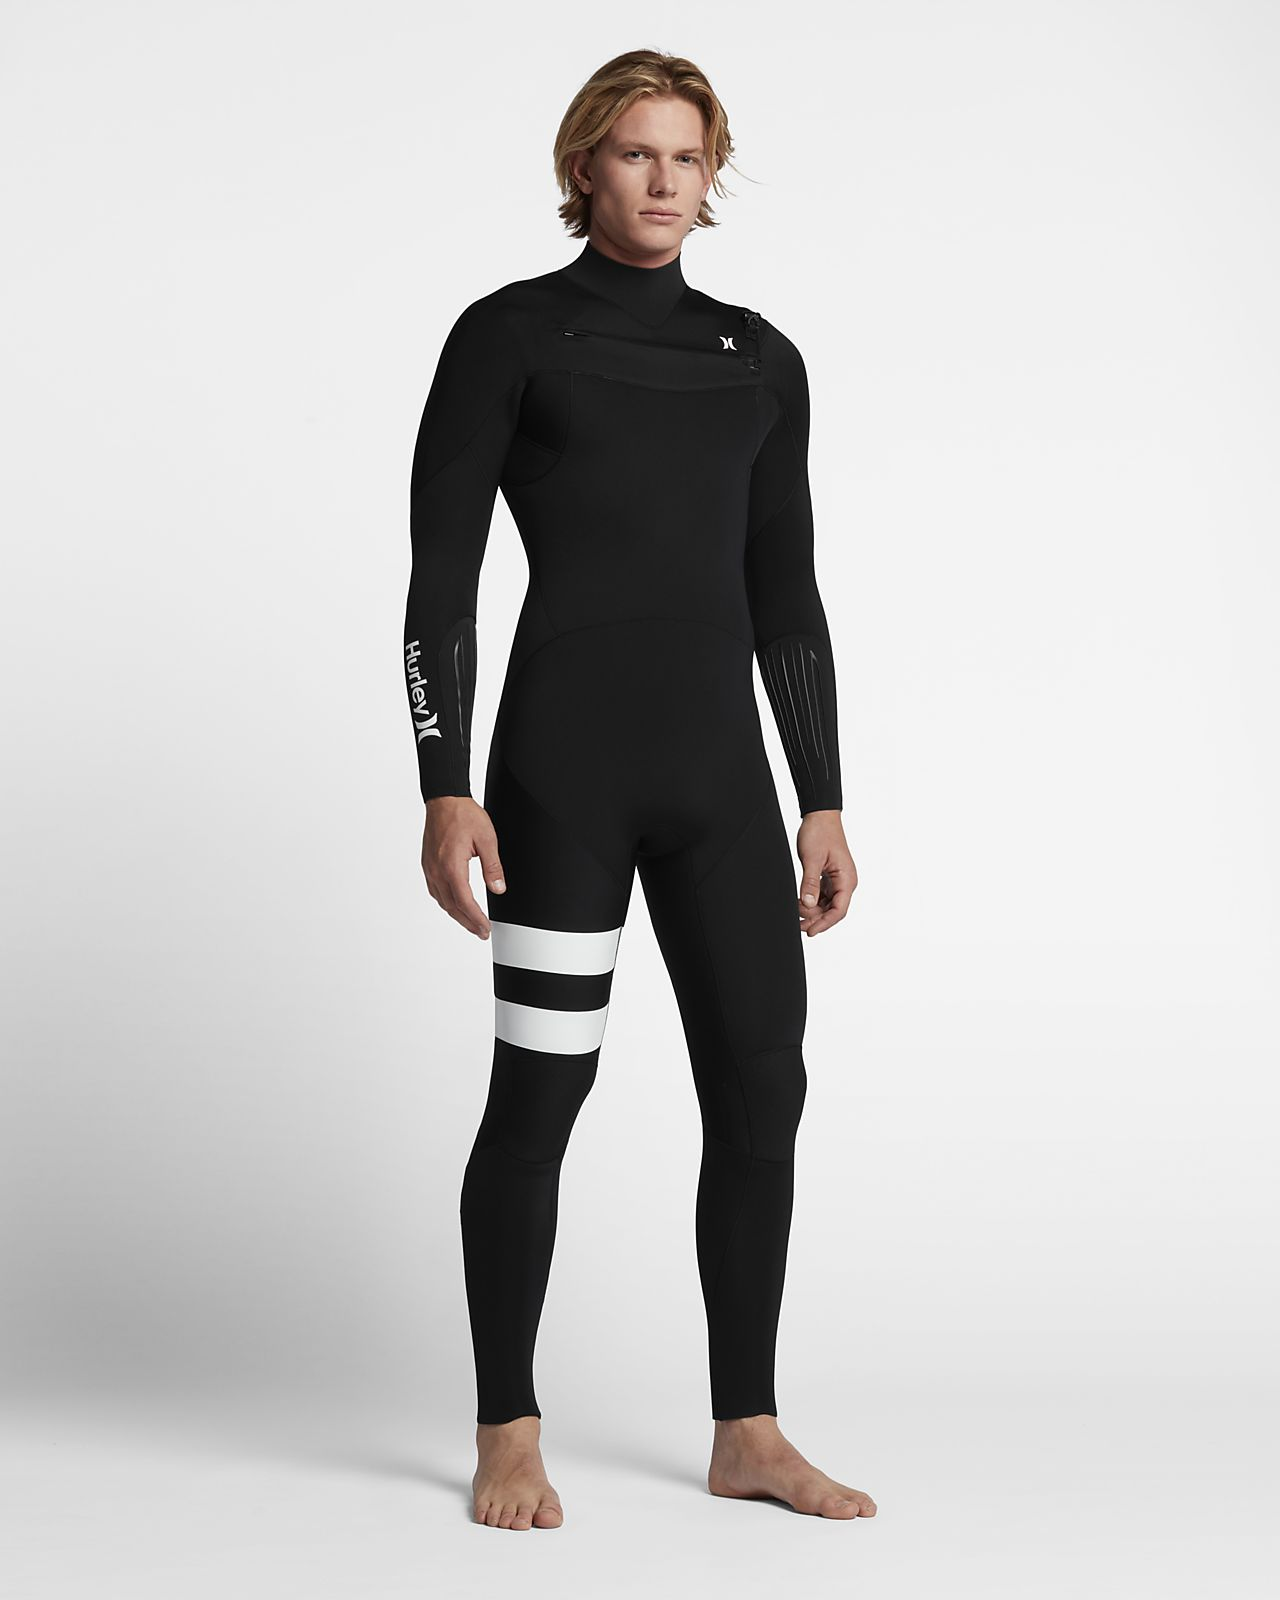 Men s Wetsuit. Hurley Advantage Elite 3 3mm Fullsuit 4bbc4984d